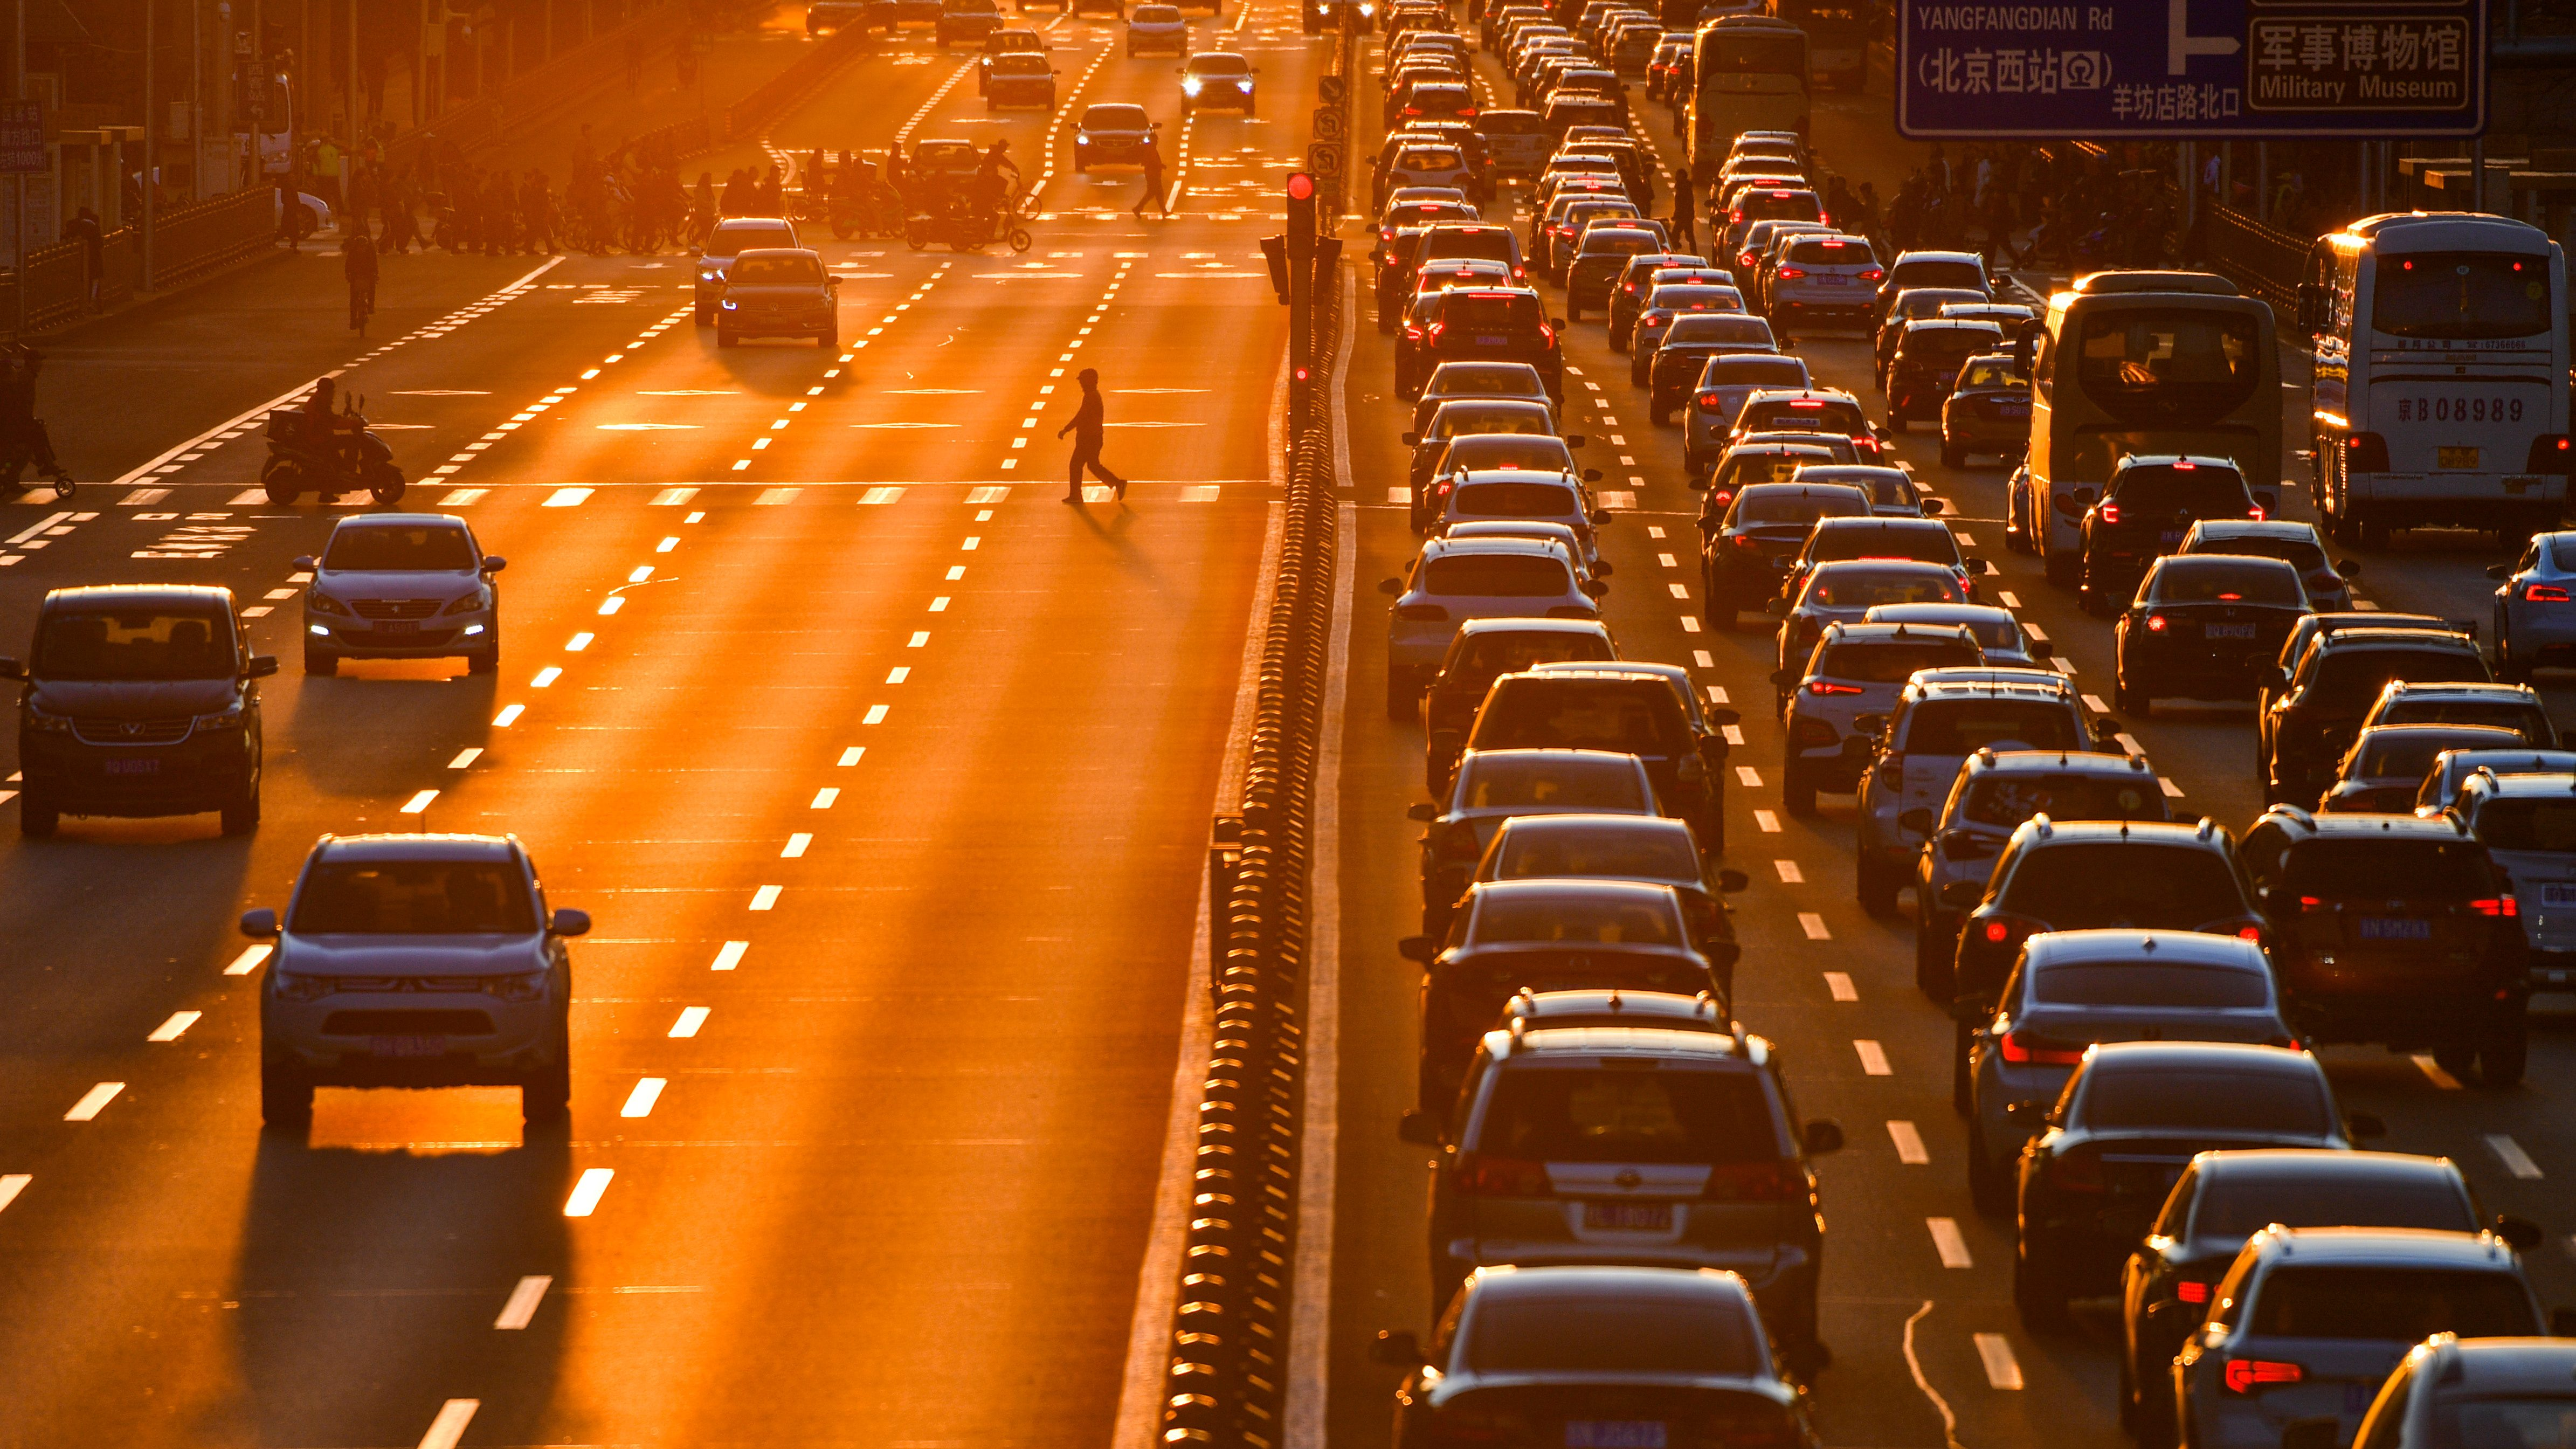 Pedestrian walks on a crossing next to cars in the traffic on a main road during sunset in Beijing